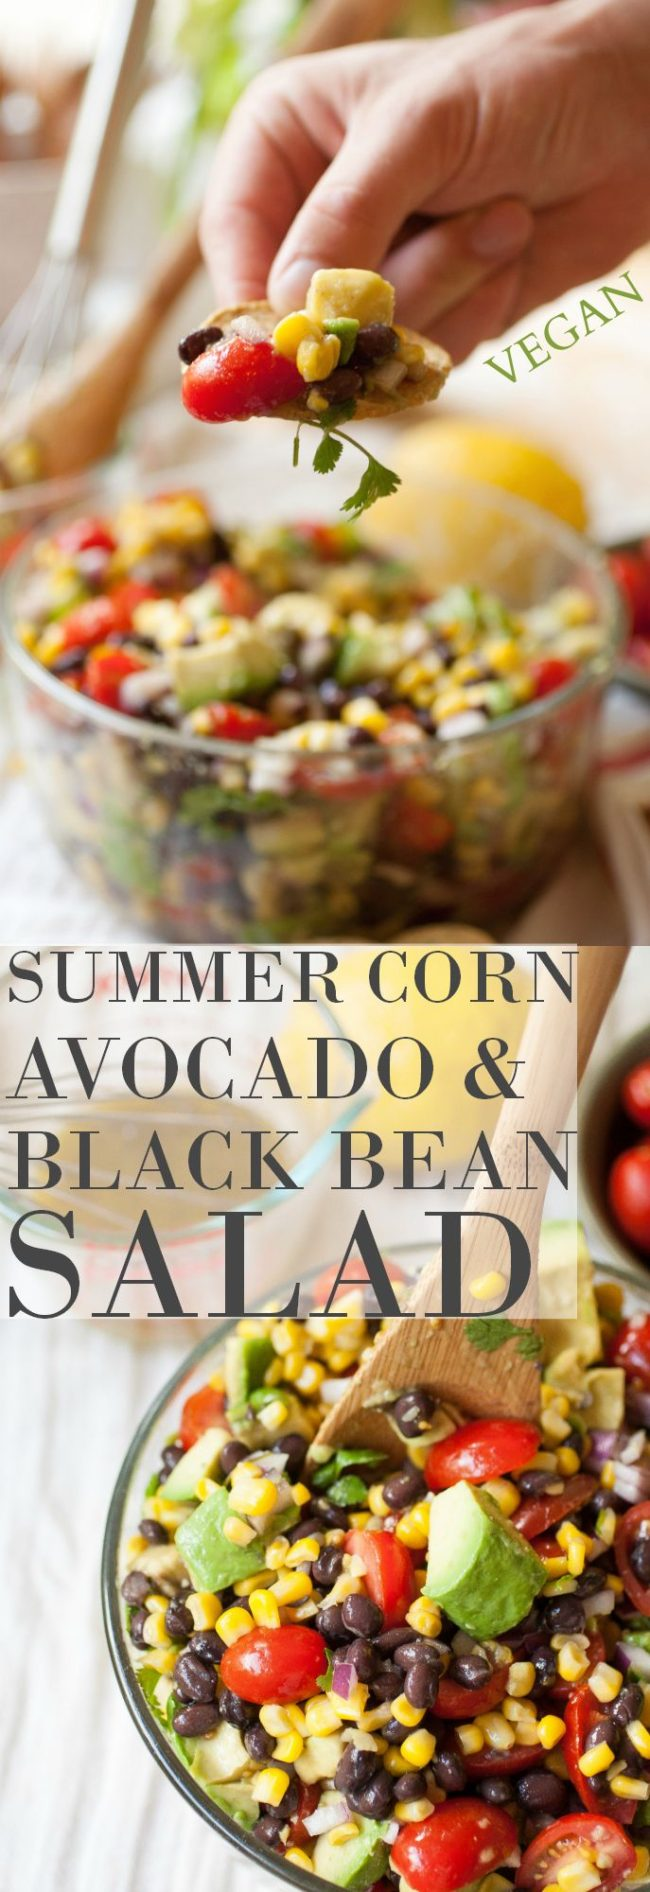 How about this SUMMER CORN, AVOCADO & BLACK BEAN SALAD from Produce on Parade! This will make a great dip, size dish or light meal.